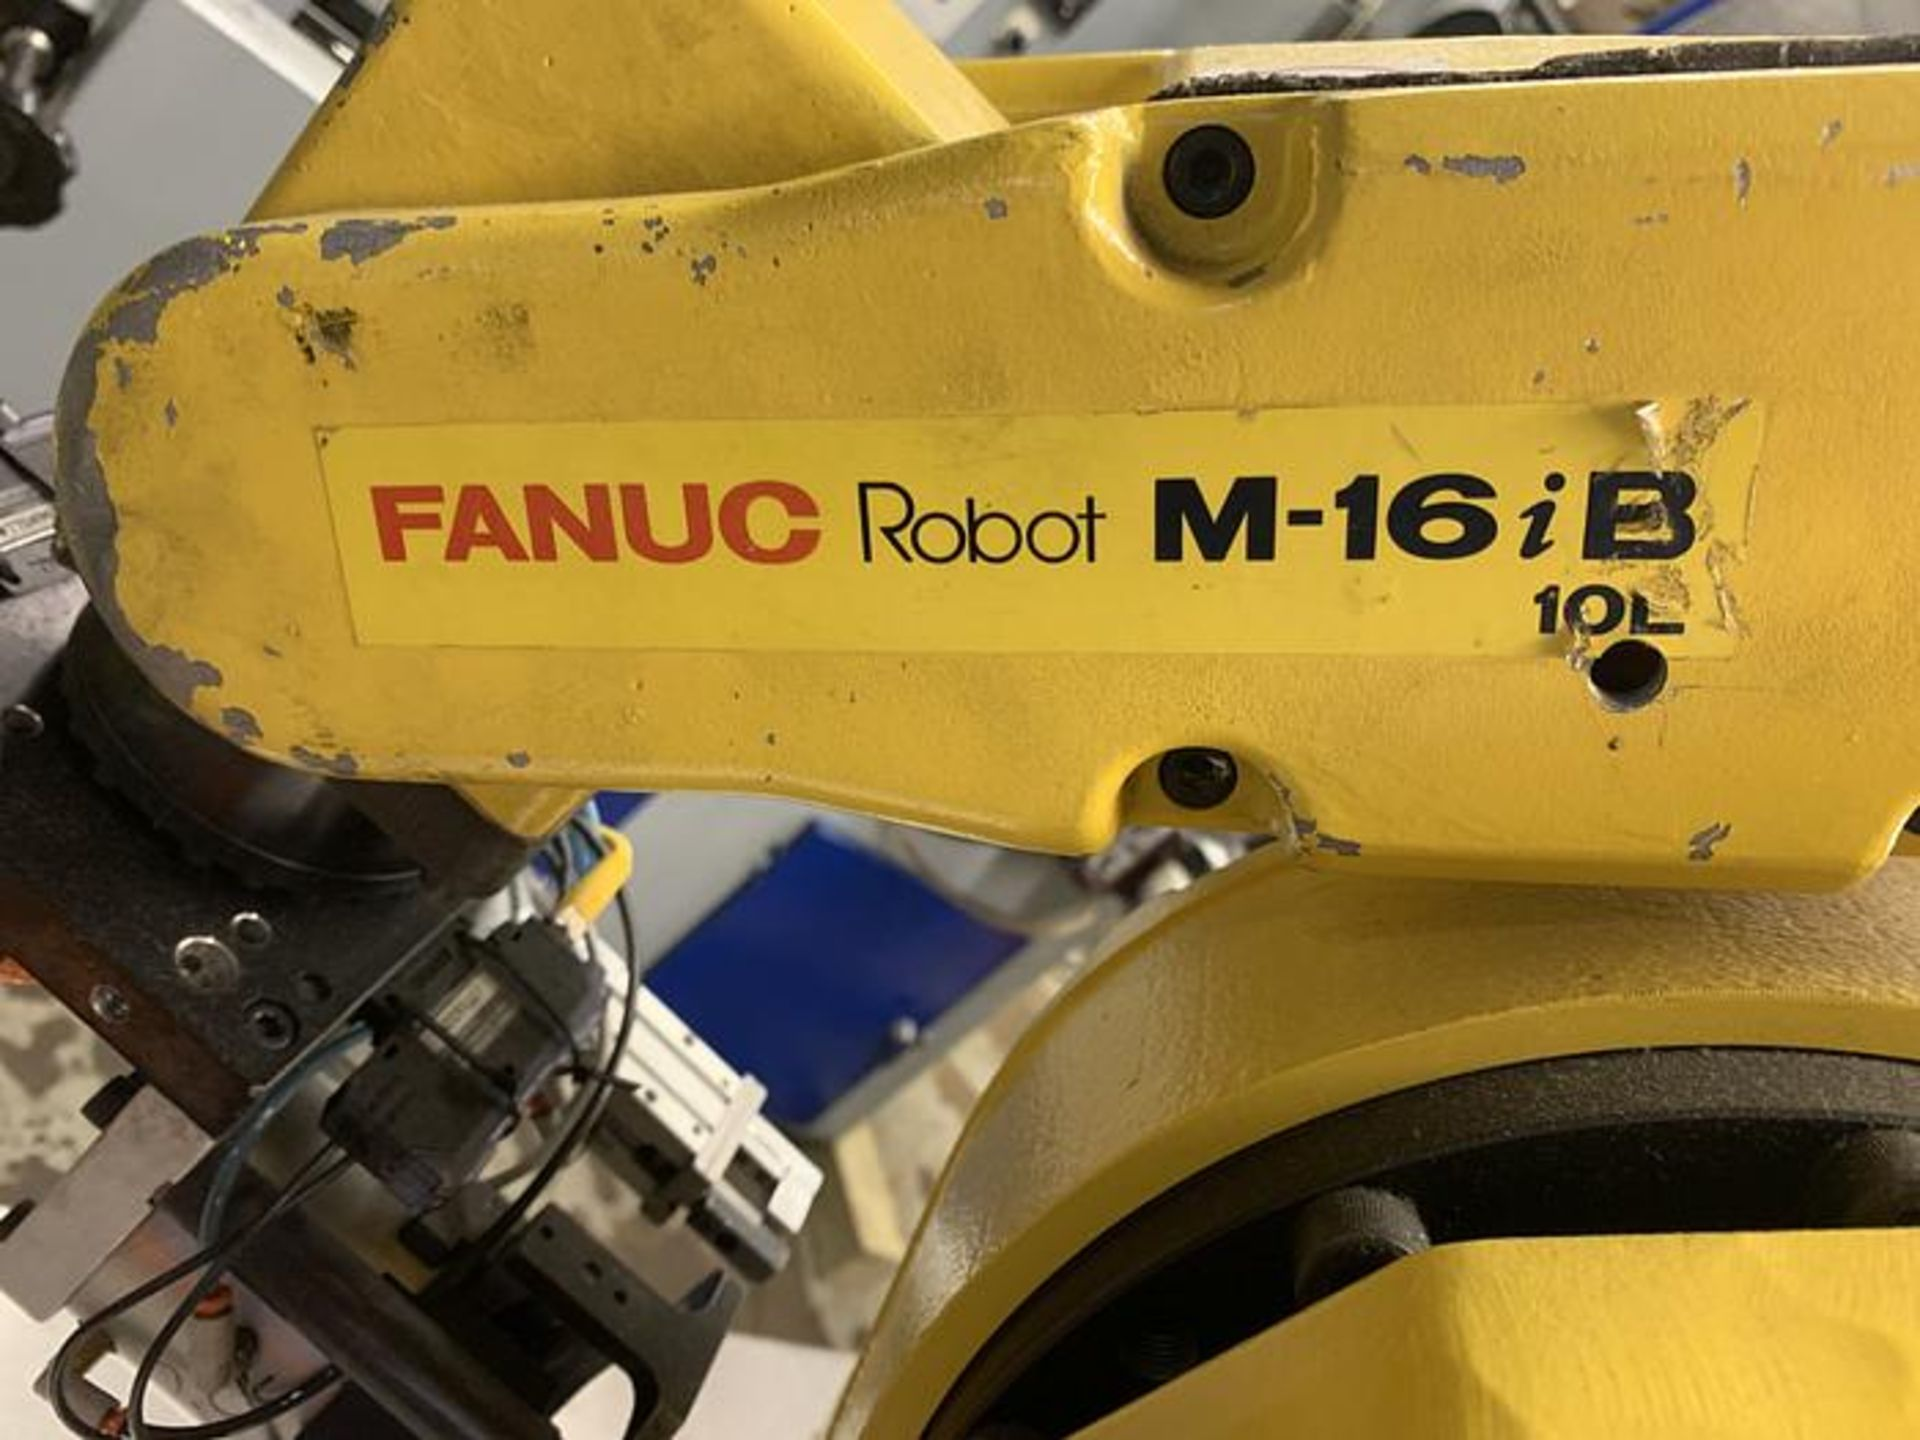 FANUC ROBOT M16iB/10L WITH RJ3iC (R30iA) CONTROLLER, TEACH & CABLES, YEAR 2006, SN 80306 - Image 5 of 17